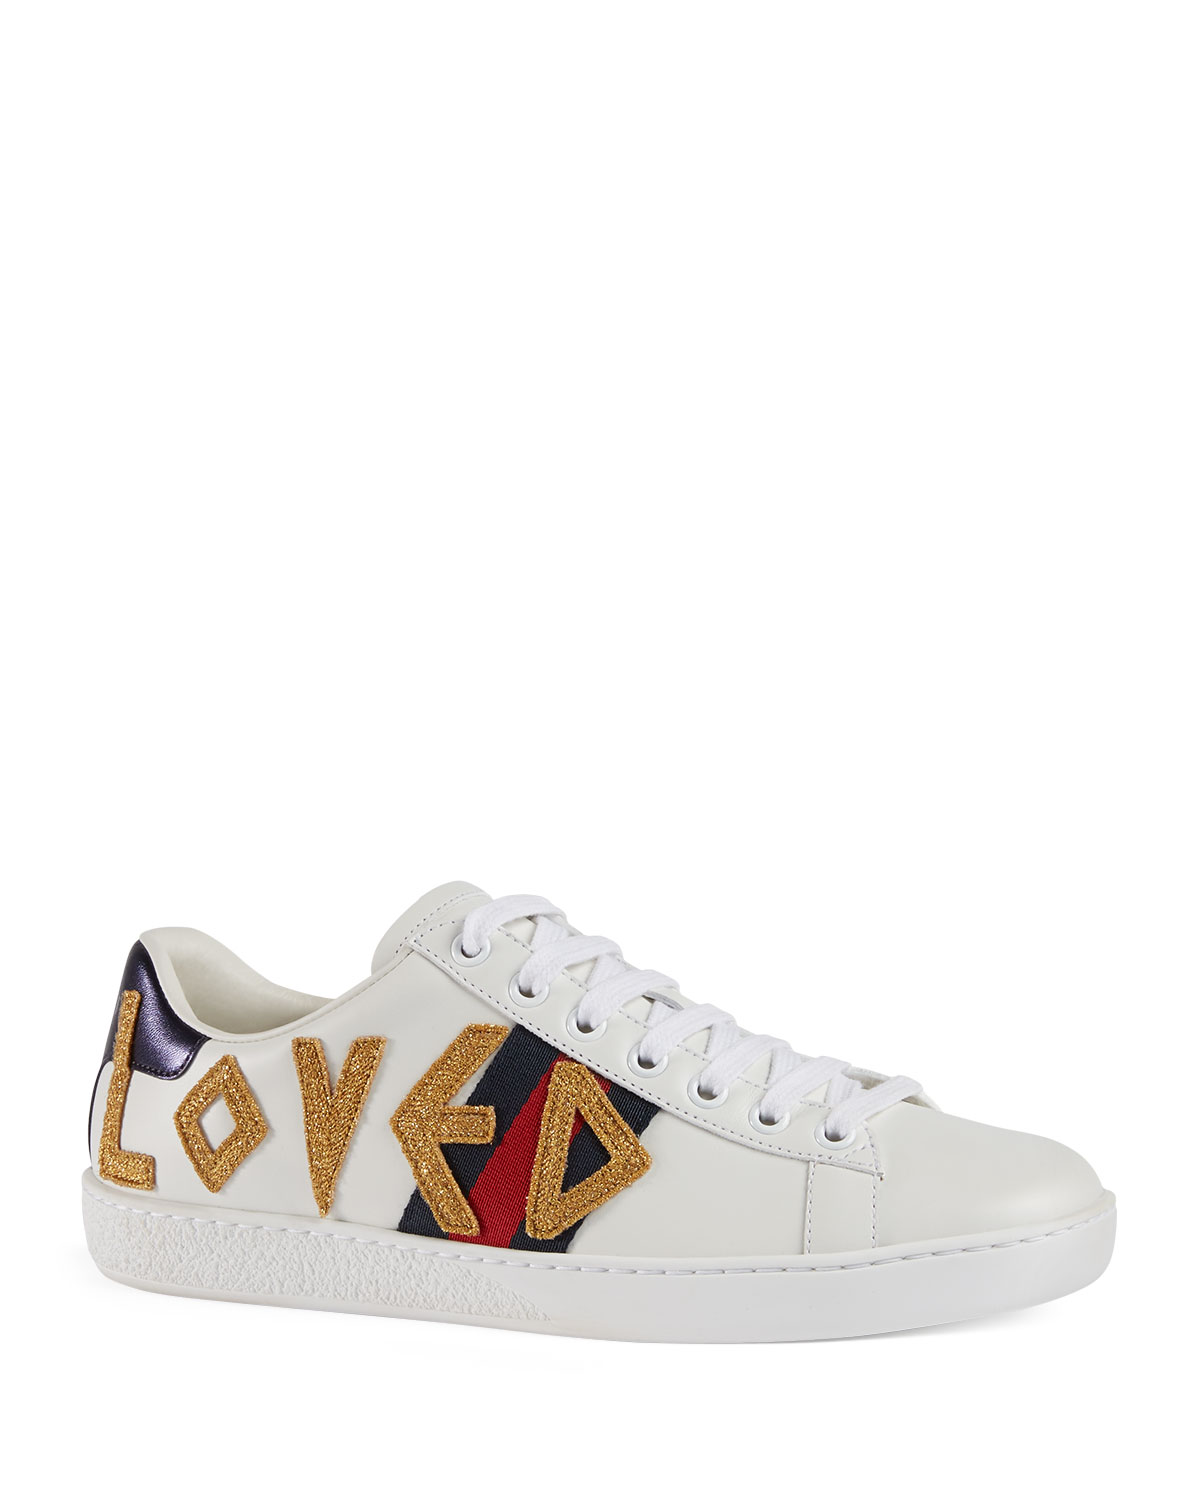 43685eb8249 Gucci New Ace  Loved  Leather Trainer